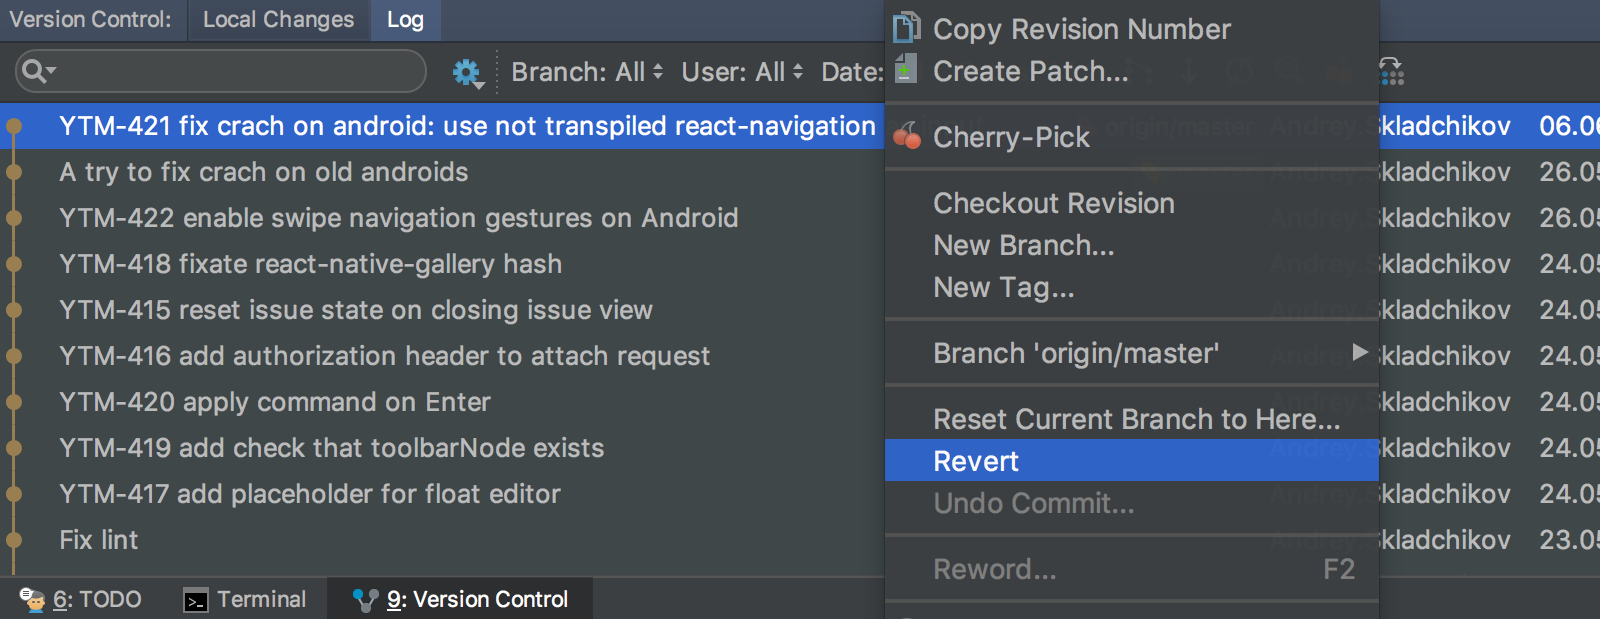 revert-commit